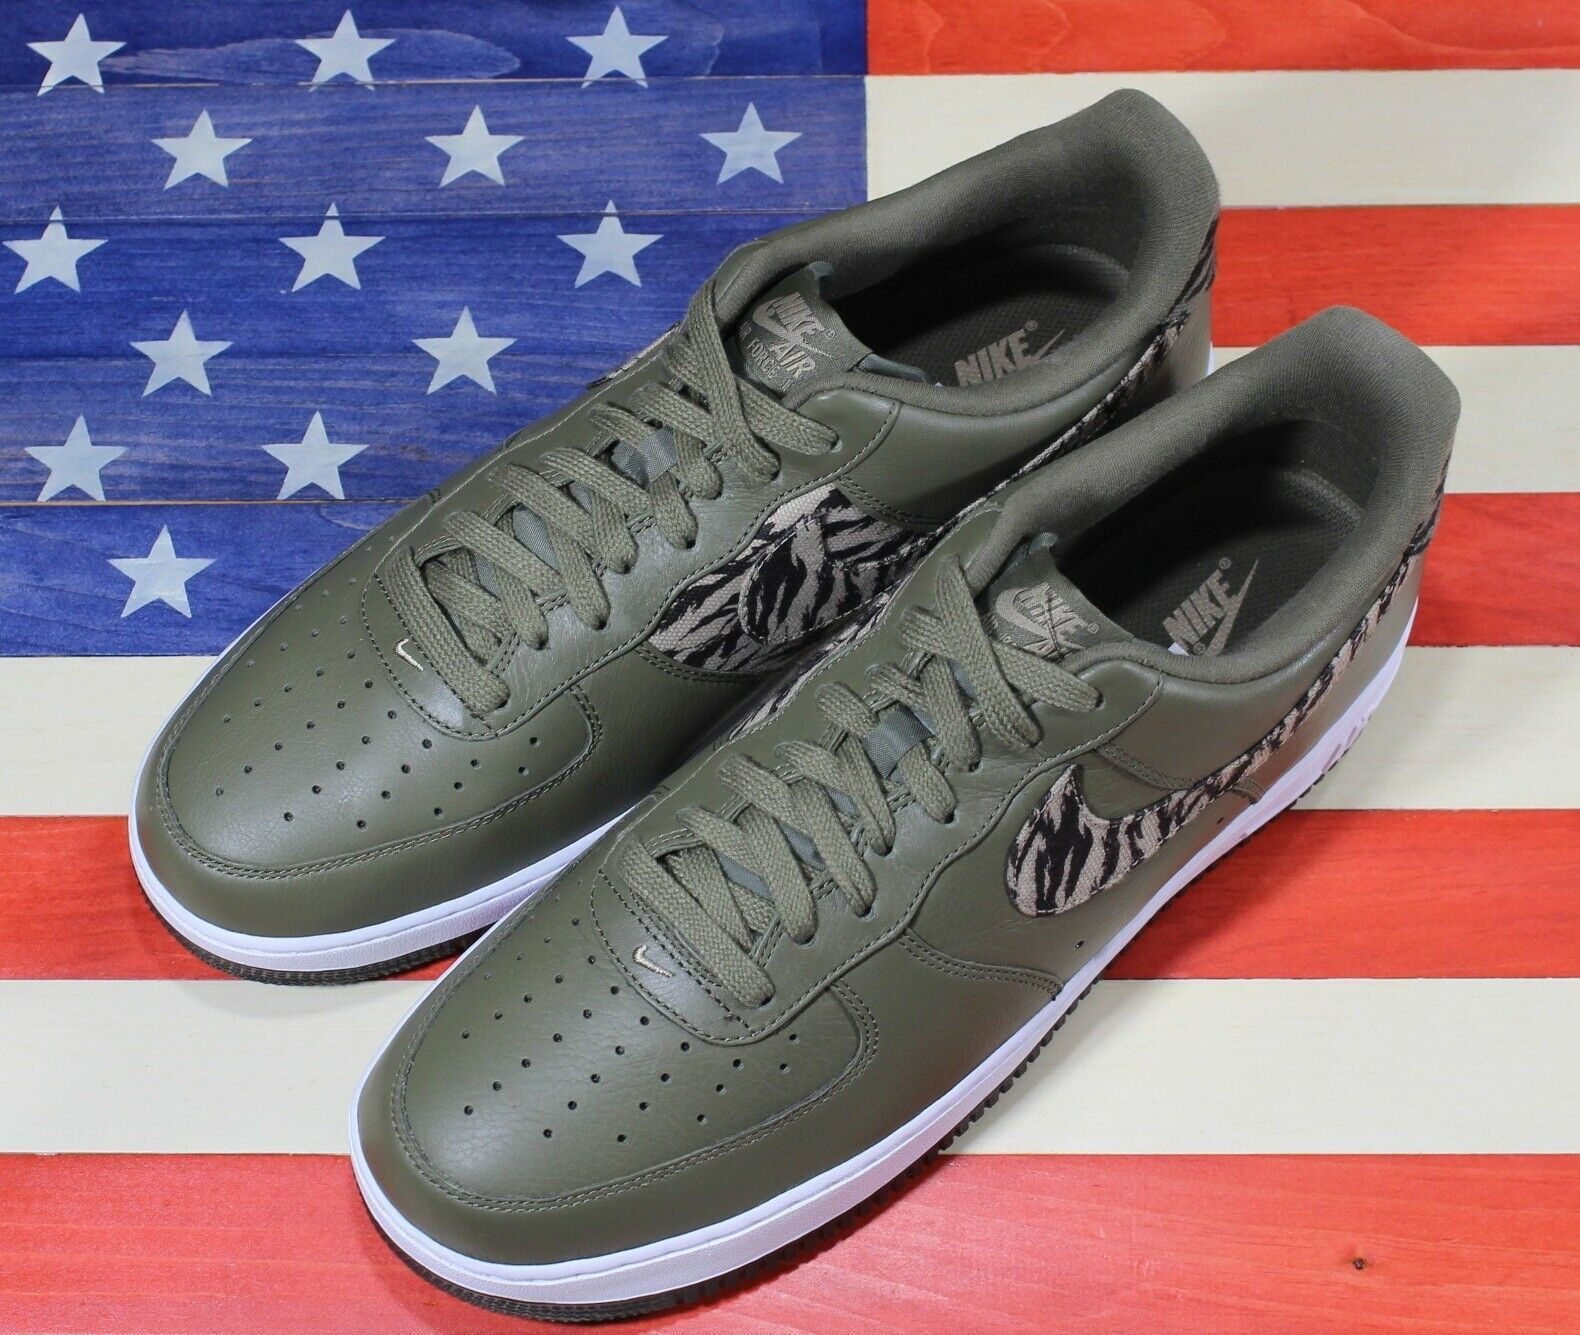 Nike Air Force 1 One Low AOP Basketball Shoes Olive-Green/White [AQ4131-200]- 13 image 10